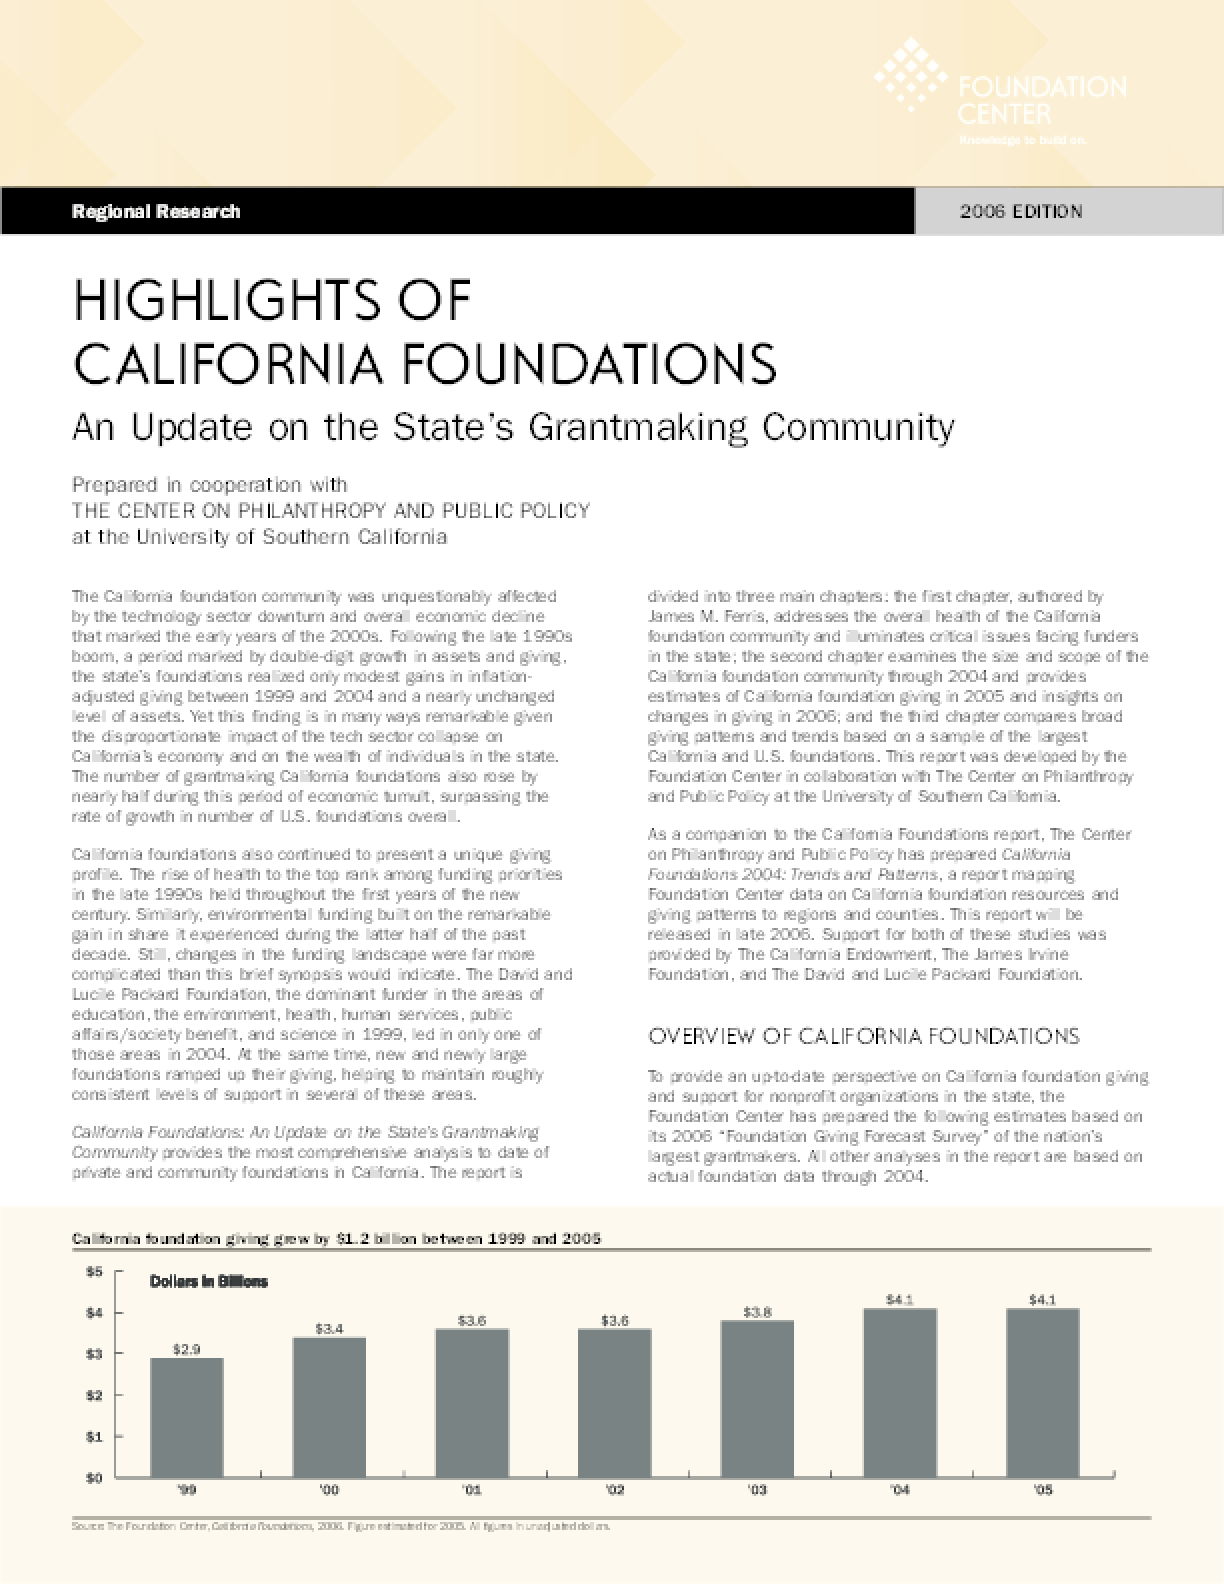 California Foundations: An Update on the State's Grantmaking Community (Highlights)